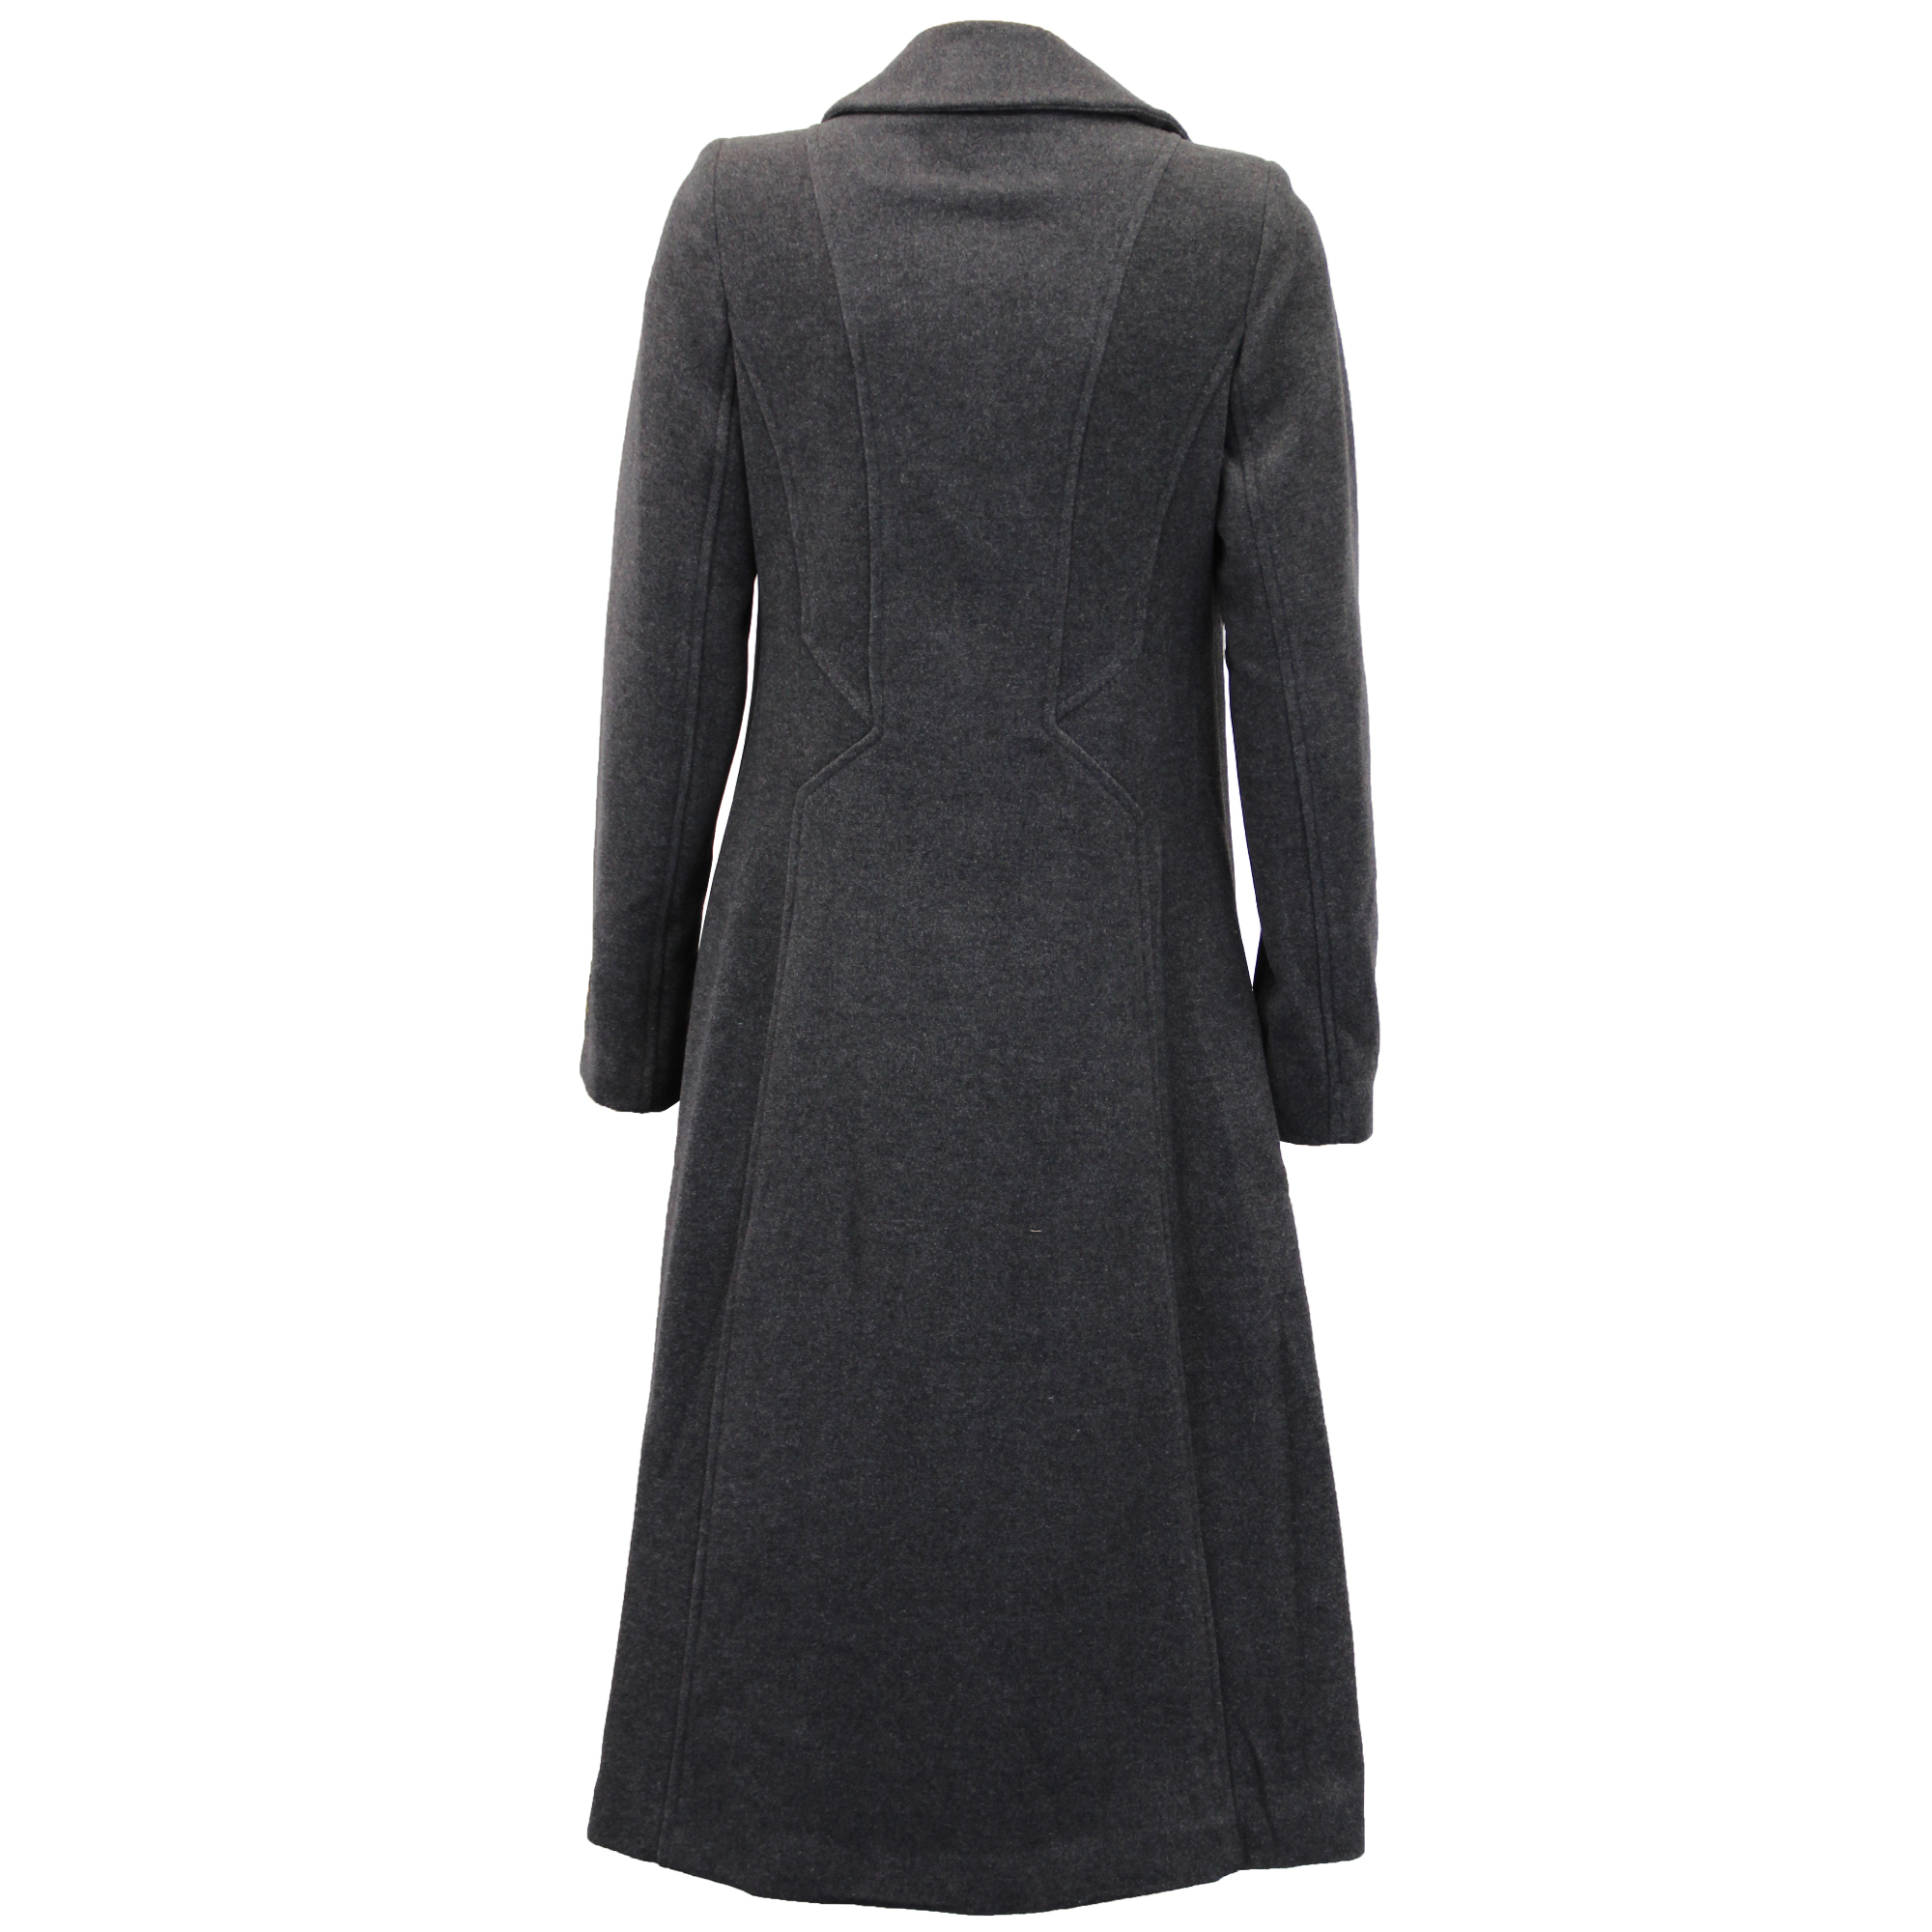 Ladies-Wool-Cashmere-Coat-Women-Jacket-Outerwear-Trench-Overcoat-Winter-Lined thumbnail 43